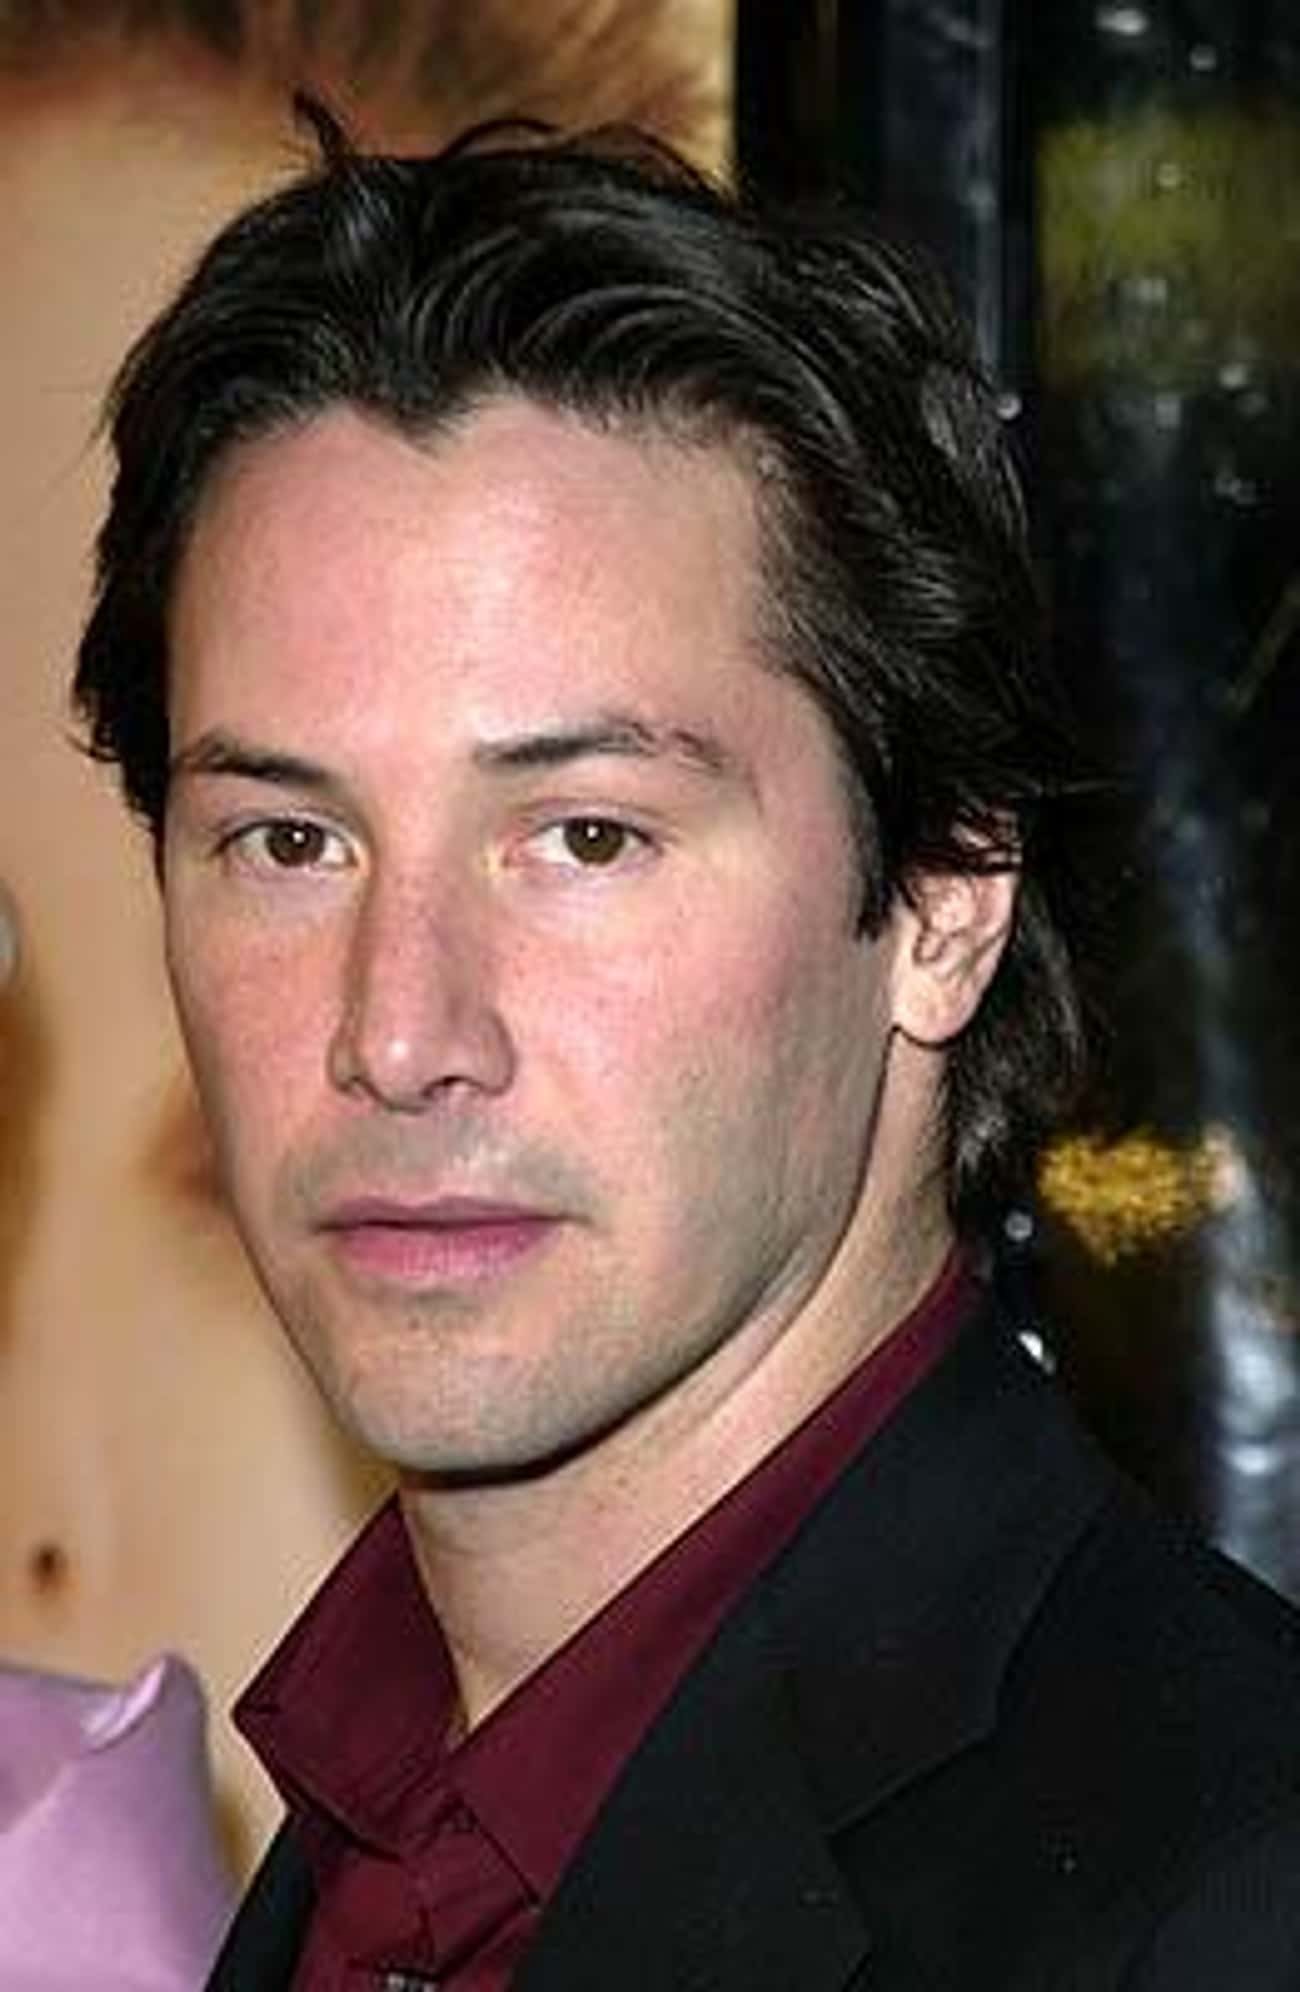 Keanu Reeves is listed (or ranked) 1 on the list Celebs You Didn't Know Aren't American